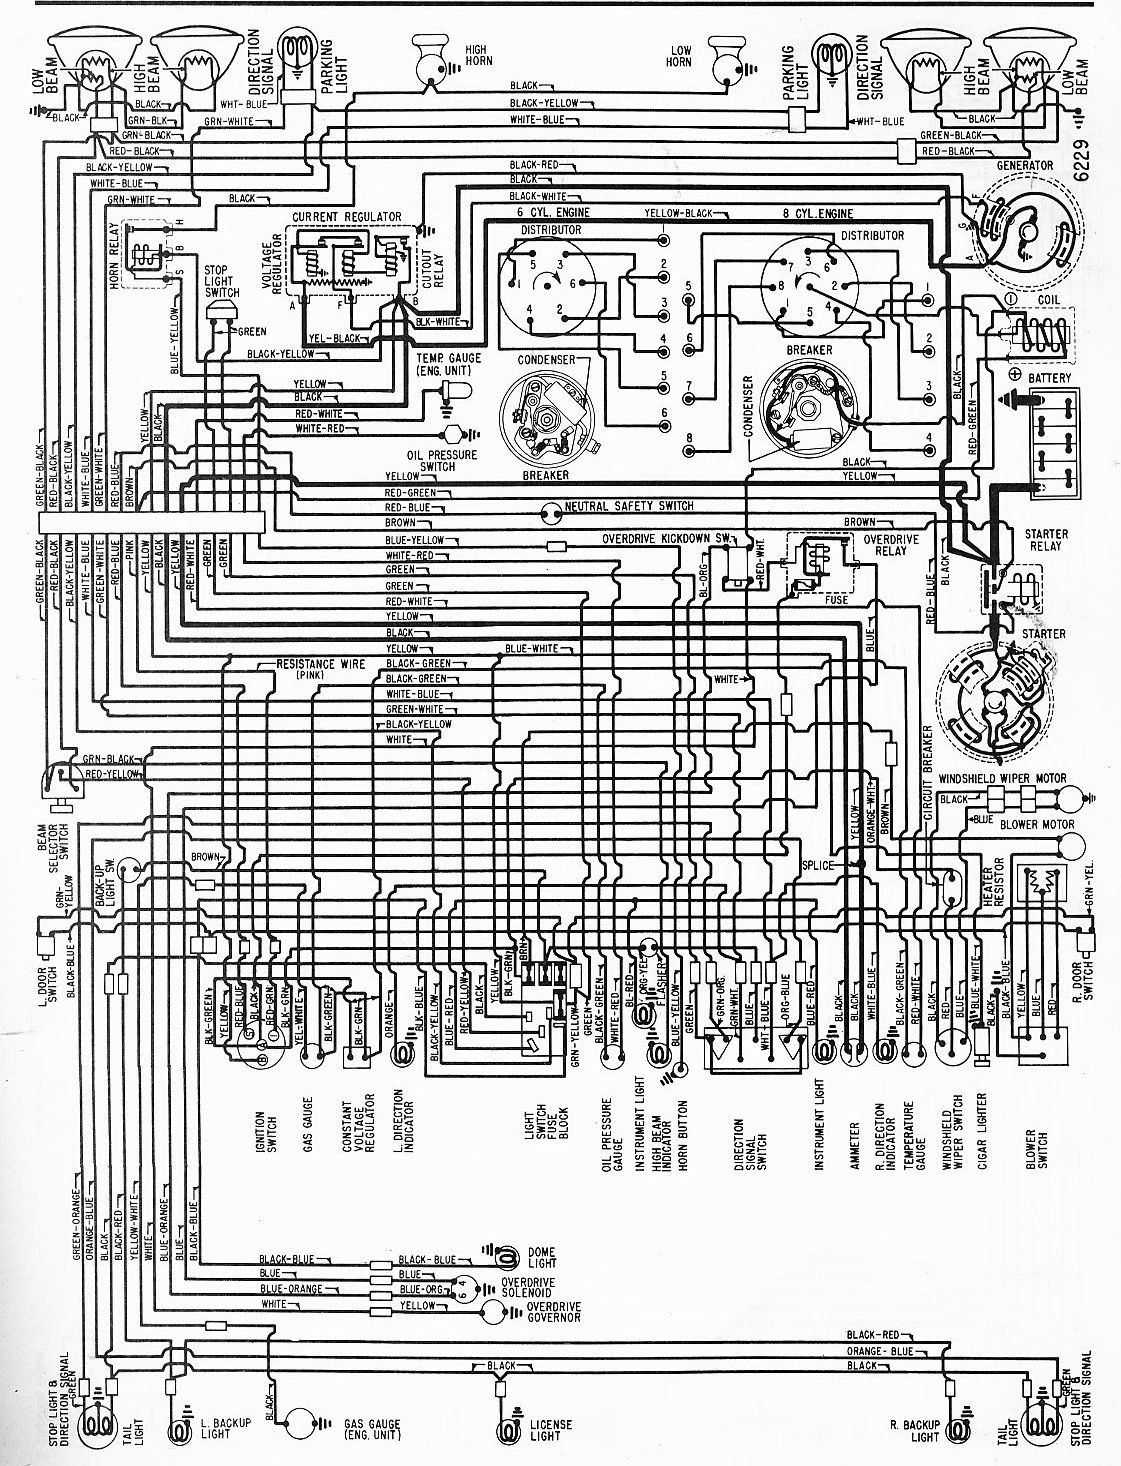 hight resolution of 1970 chevy c10 fuse box diagram wiring diagram portal with regard to 1972 chevy truck wiring diagram